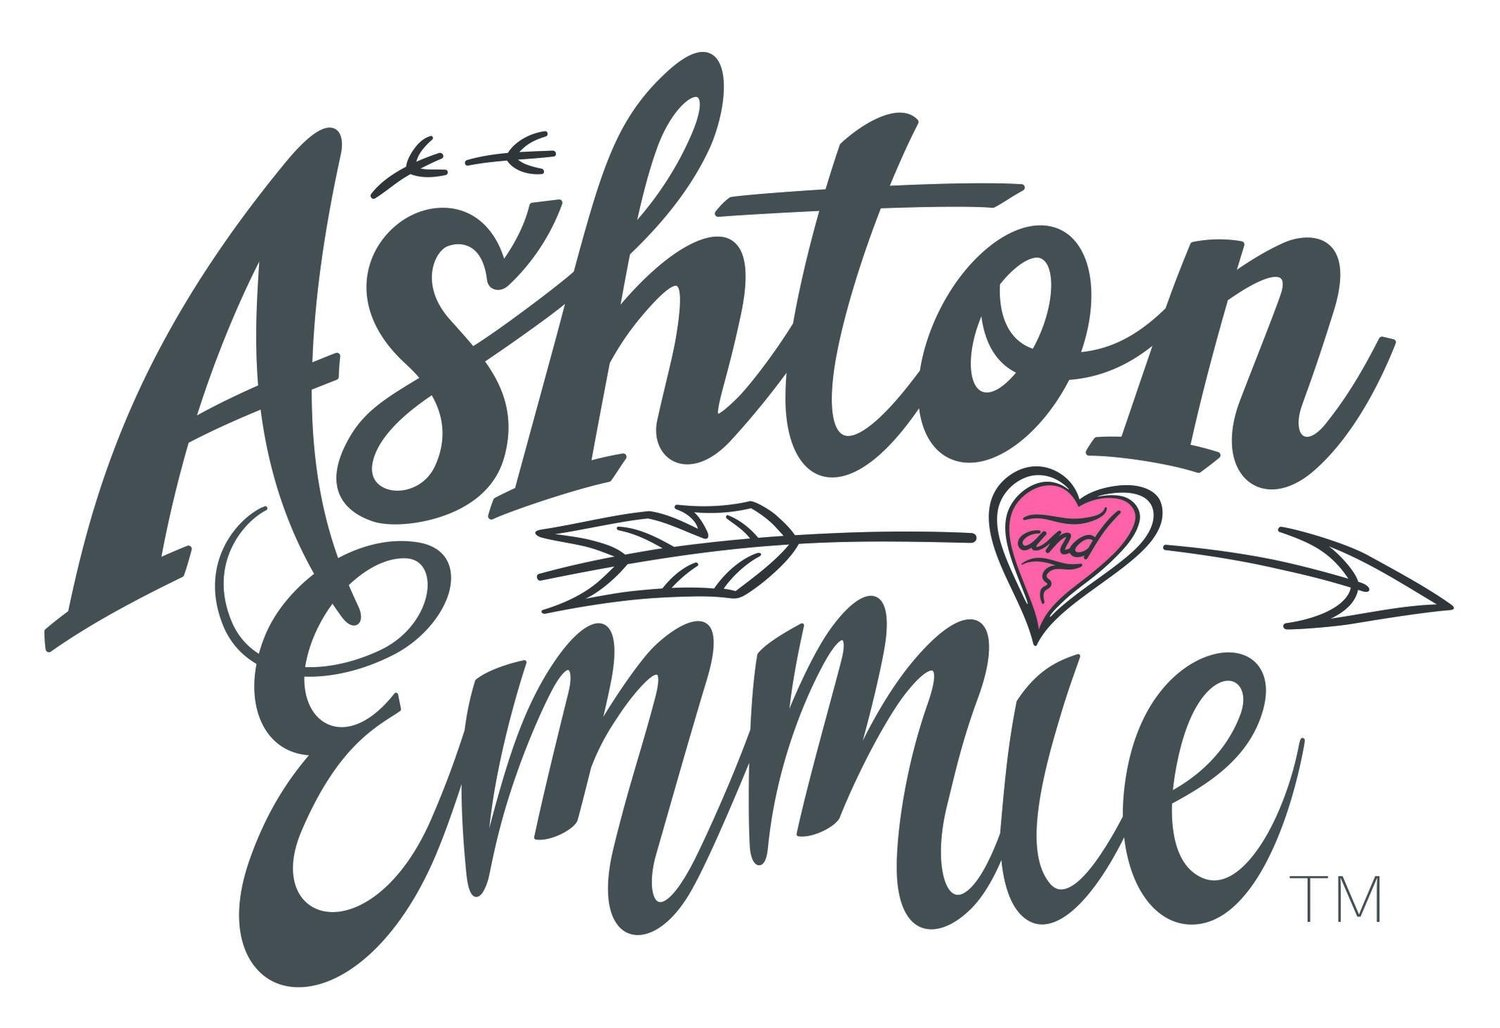 Ashton and Emmie